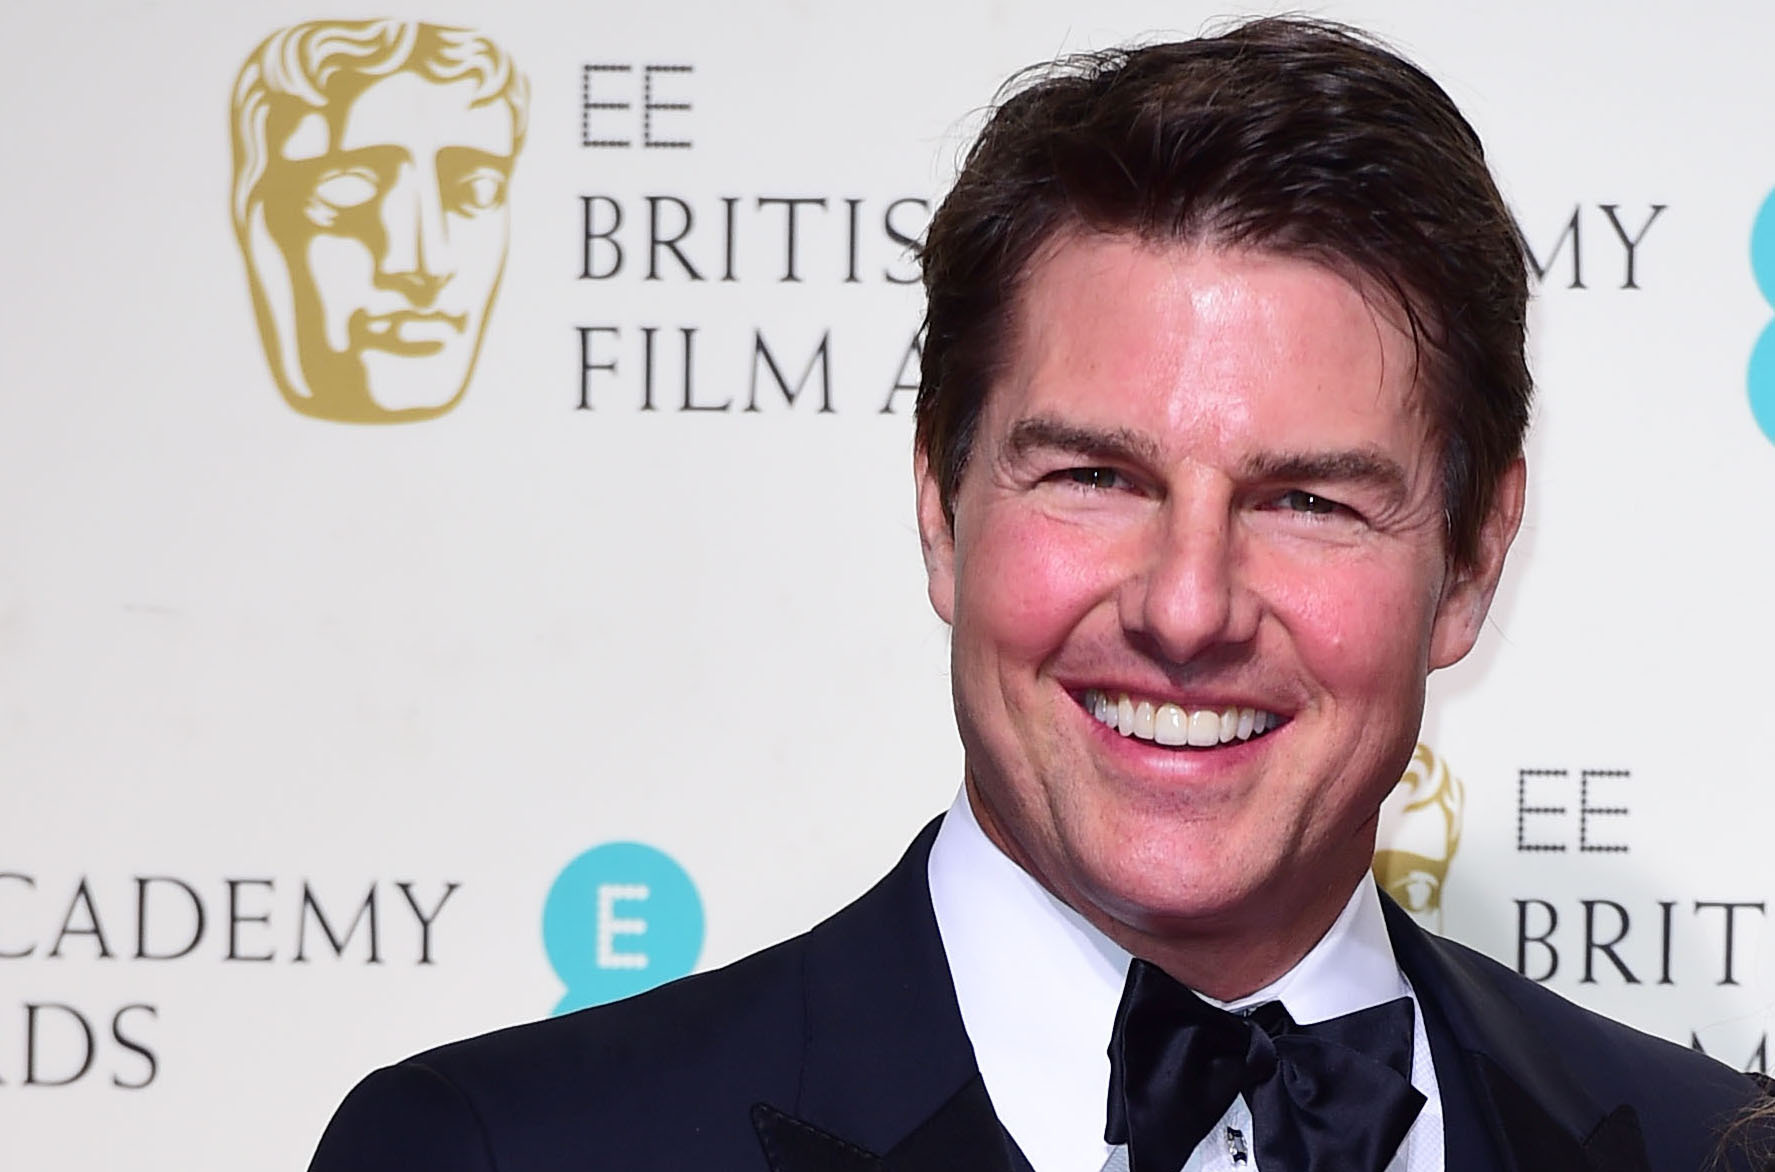 Tom Cruise broke his ankle on set of 'Mission: Impossible 6'